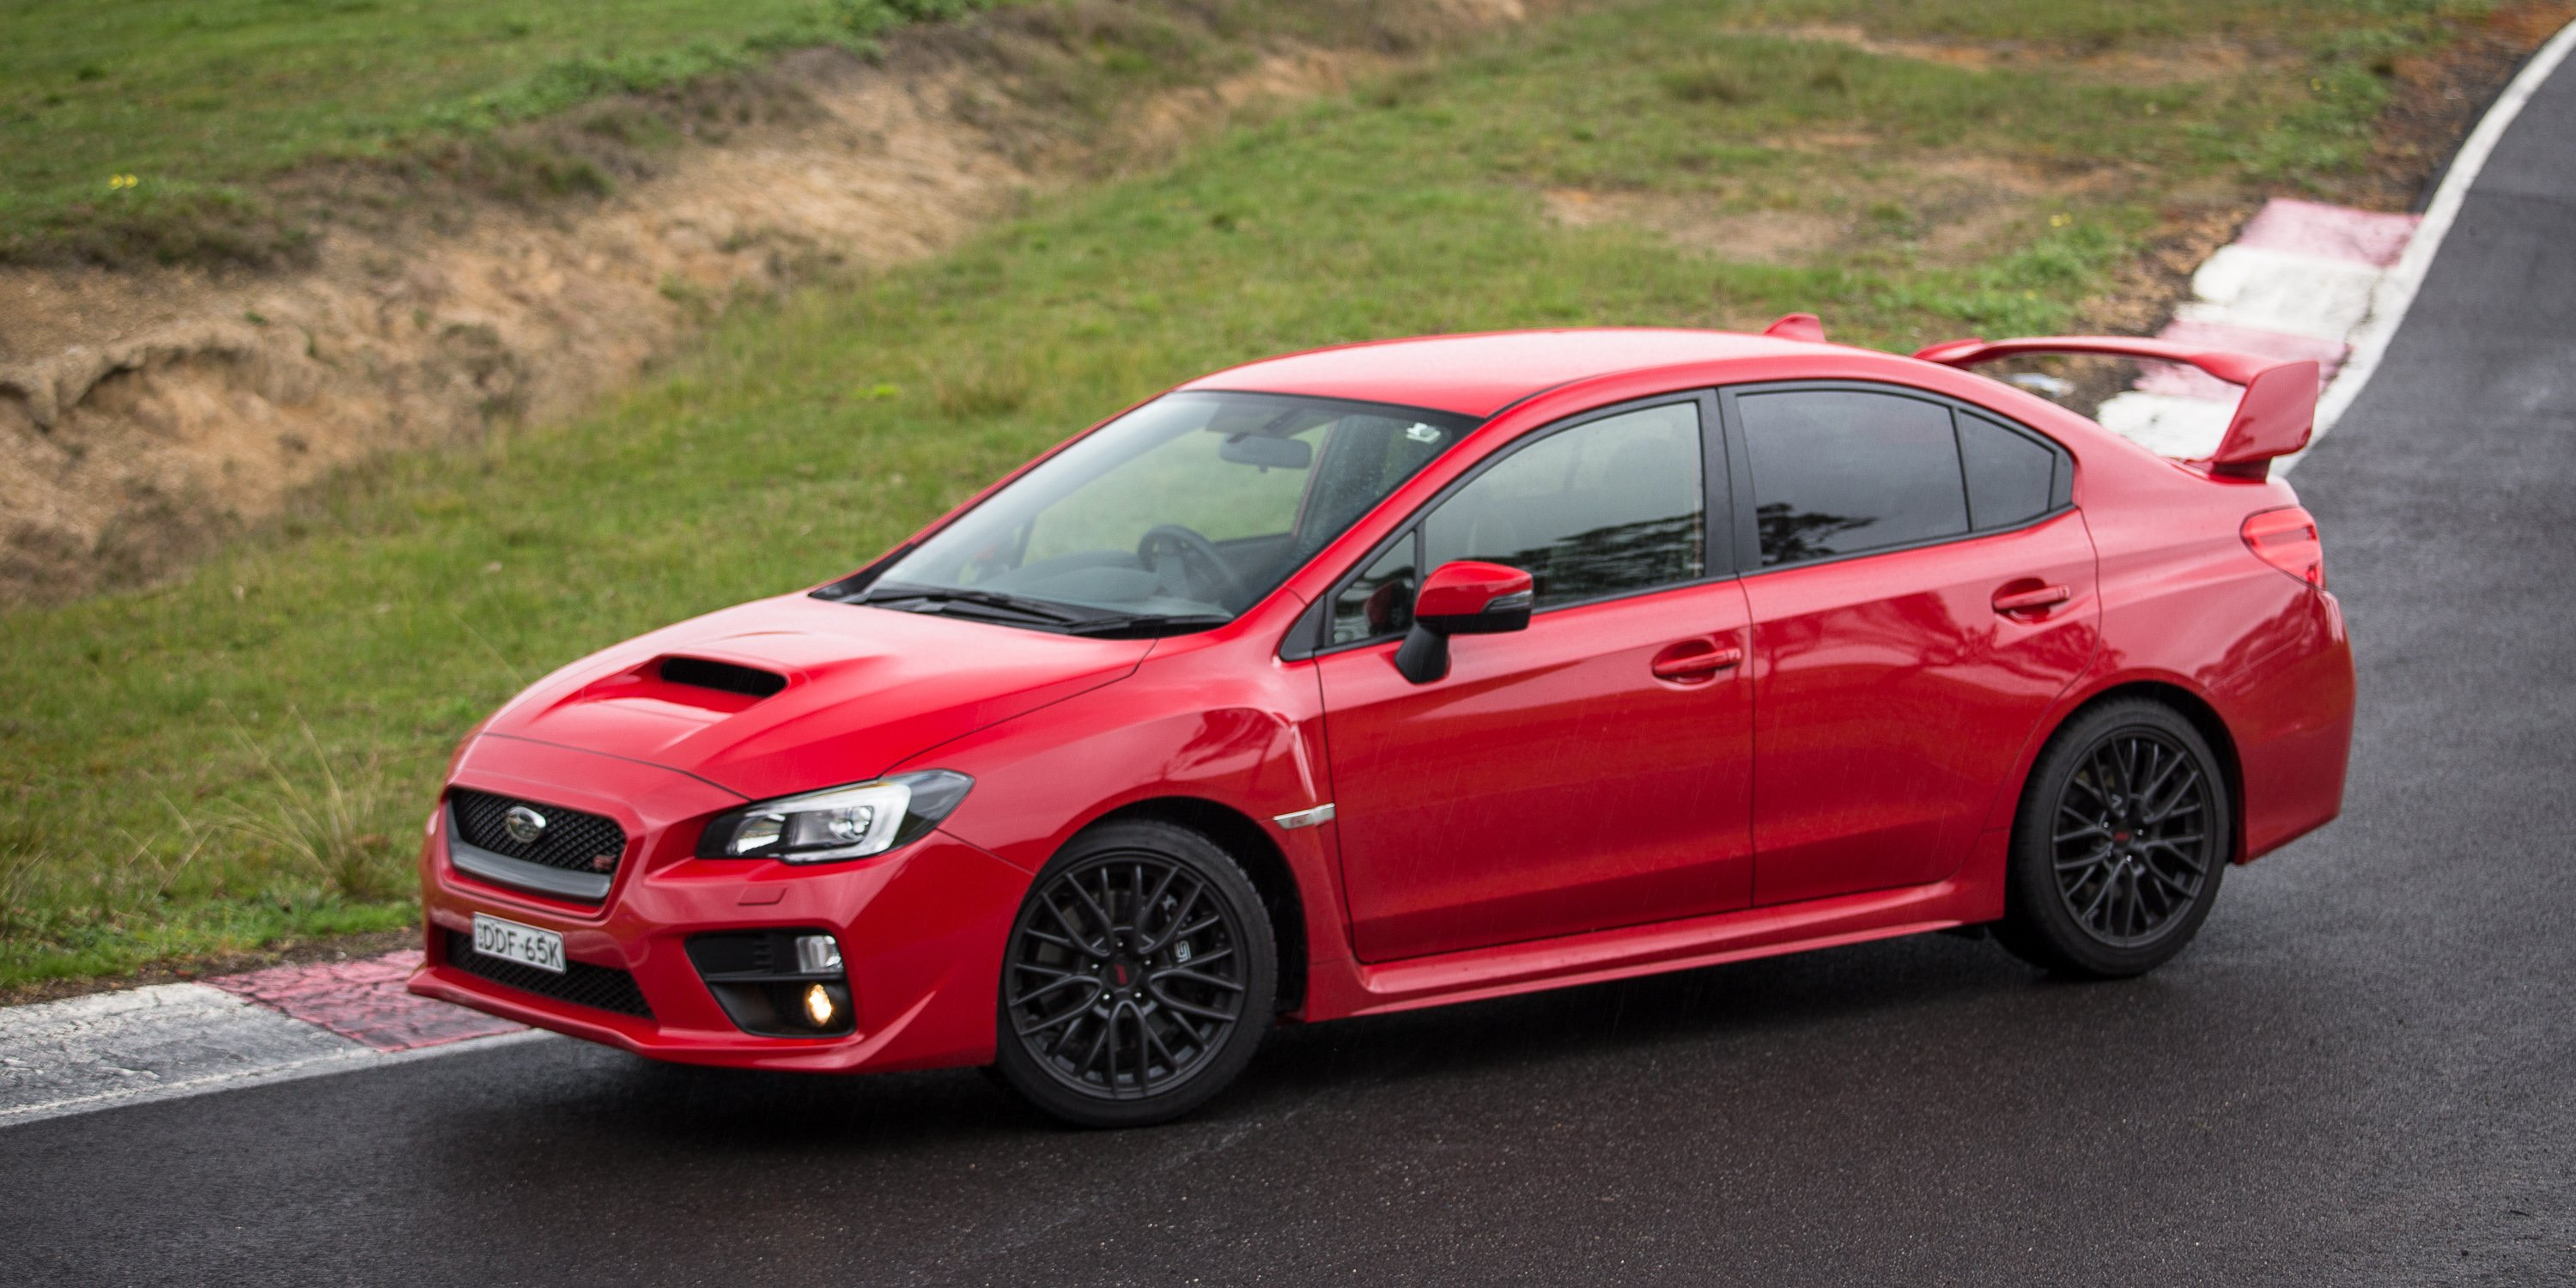 ford focus rs v subaru wrx sti v volkswagen golf r comparison track test photos 1 of 126. Black Bedroom Furniture Sets. Home Design Ideas